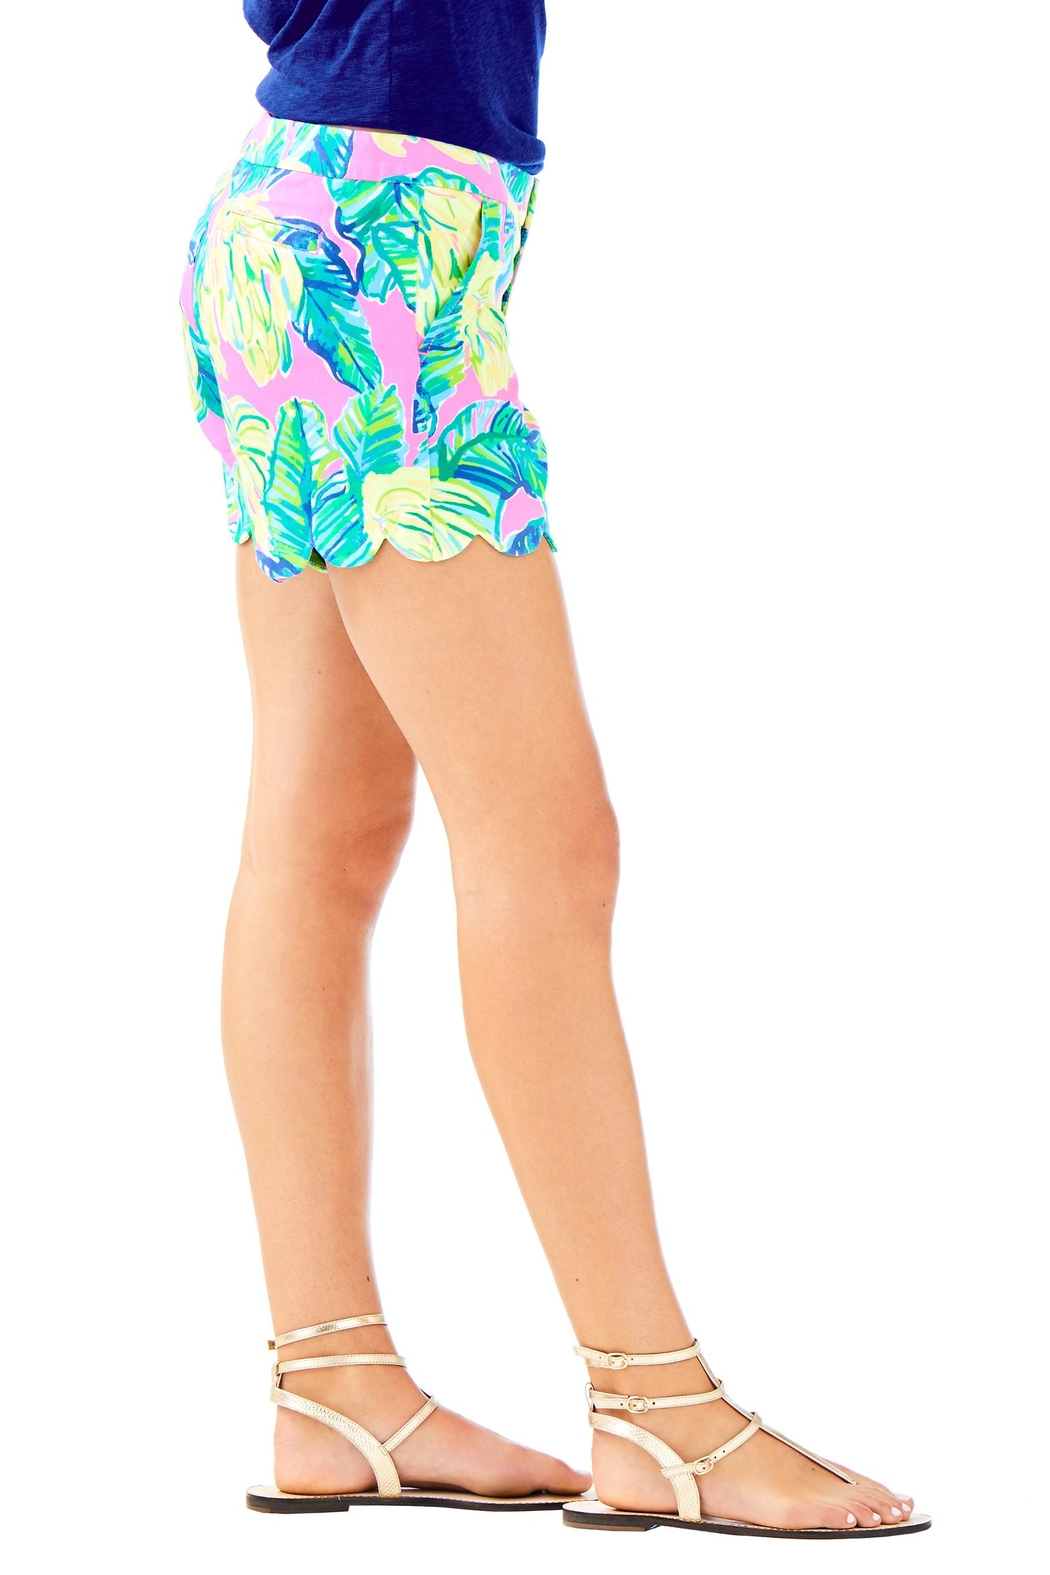 Lilly Pulitzer Buttercup Twill Short - Side Cropped Image